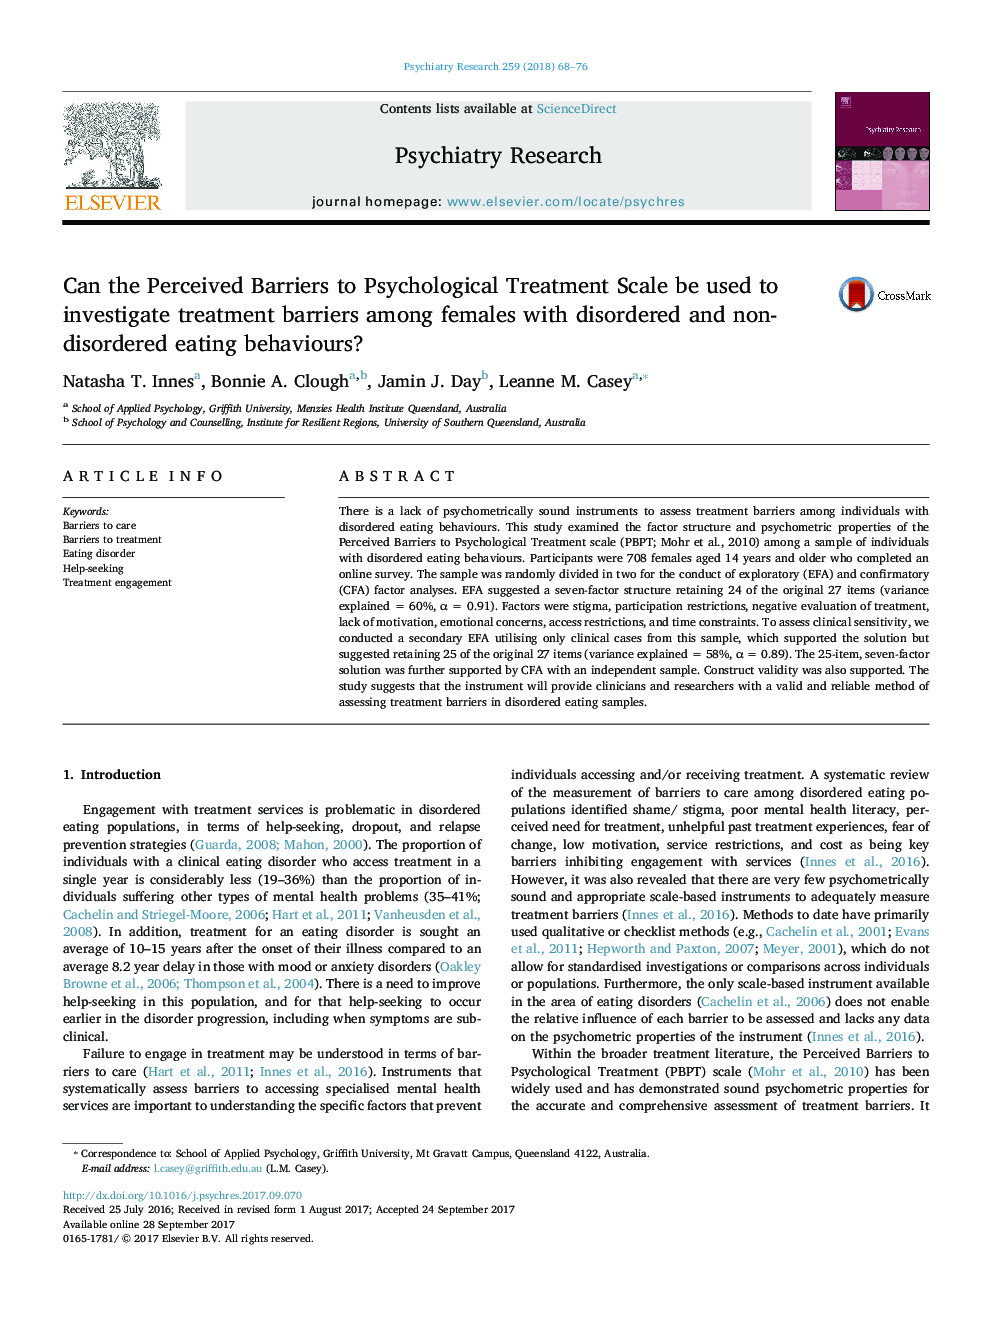 Can the Perceived Barriers to Psychological Treatment Scale be used to investigate treatment barriers among females with disordered and non-disordered eating behaviours?